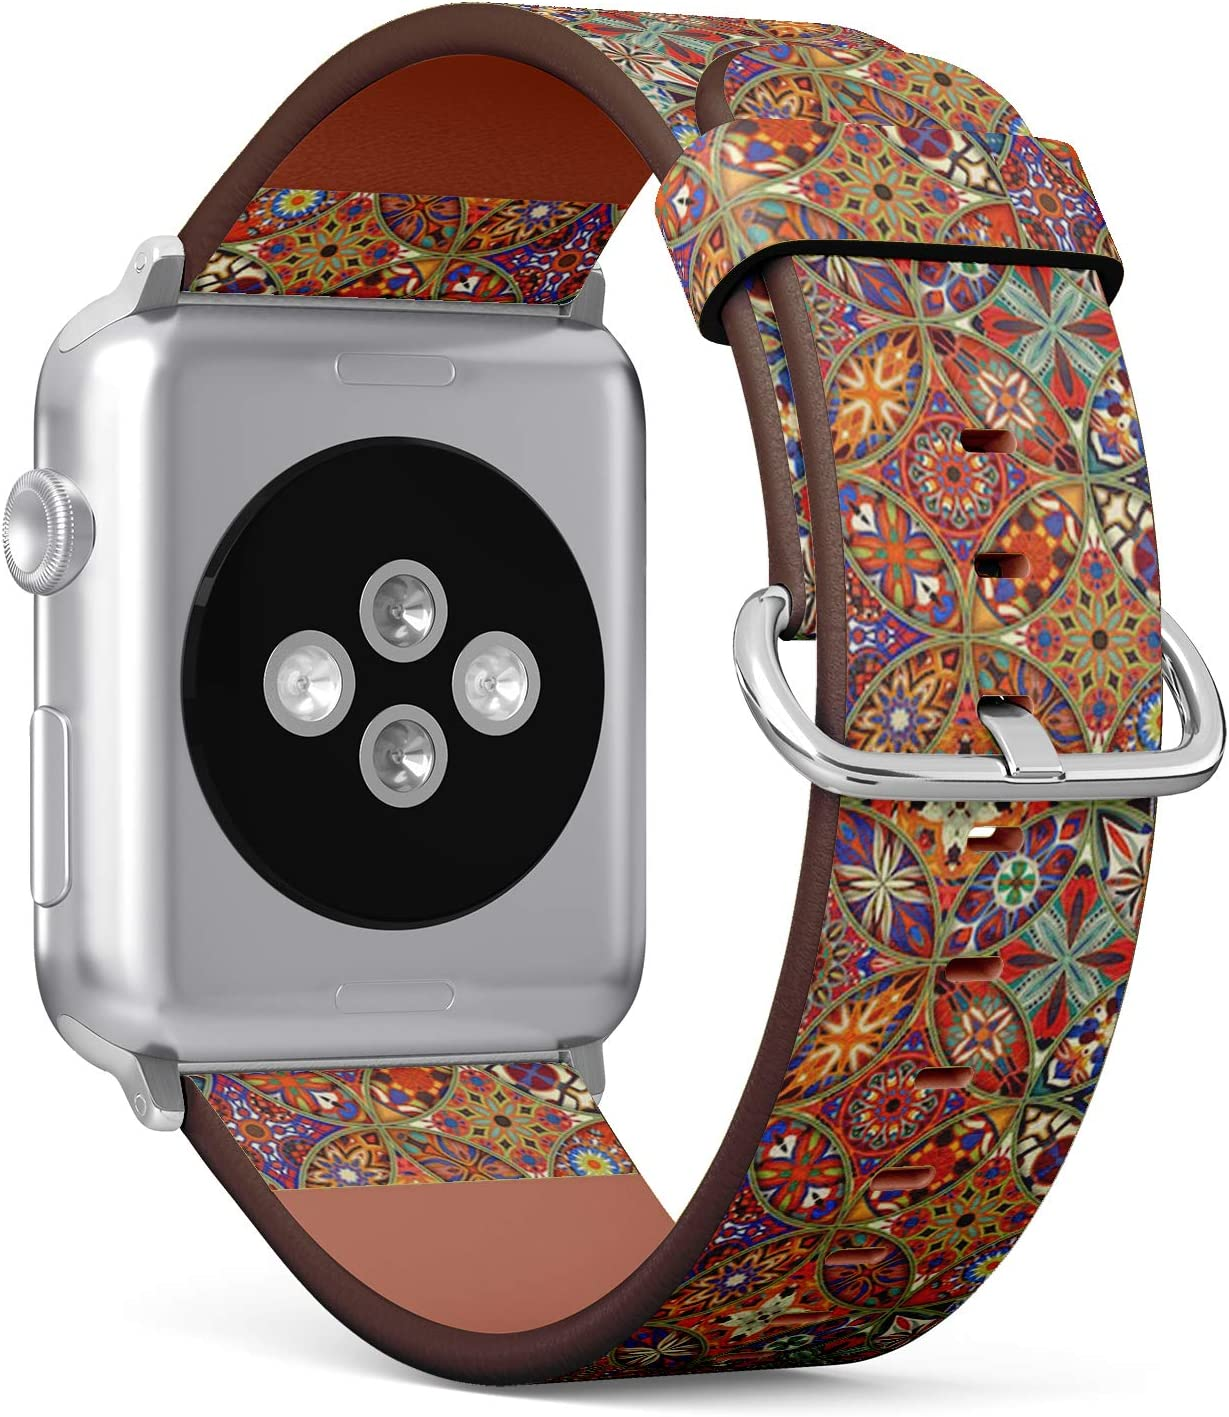 Compatible with Big Apple Watch 42mm & 44mm (Series 5, 4, 3, 2, 1) Leather Watch Wrist Band Strap Bracelet with Stainless Steel Clasp and Adapters (Decorative Mandalas Vintage)